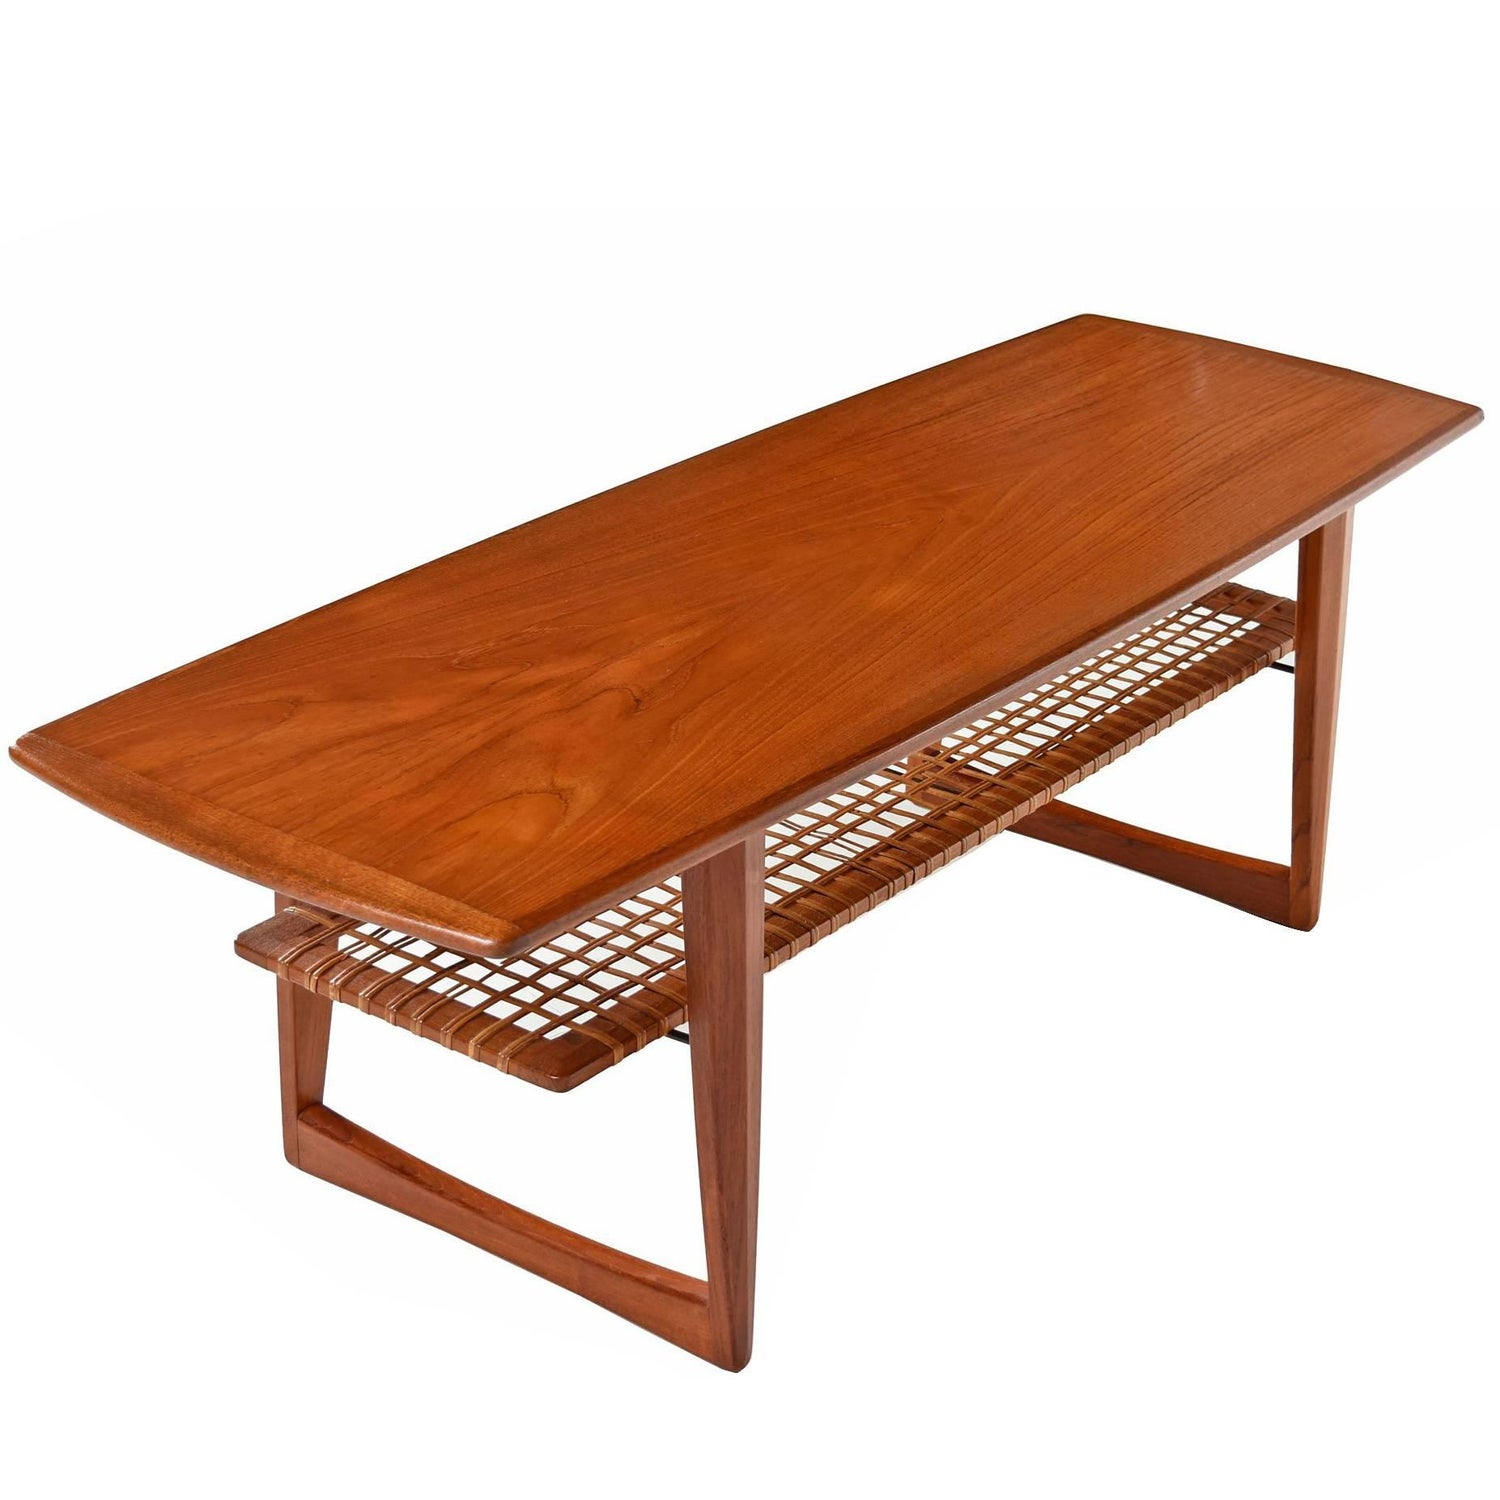 Danish Teak B¸rge Mogensen Style Coffee Table with Cane Bottom